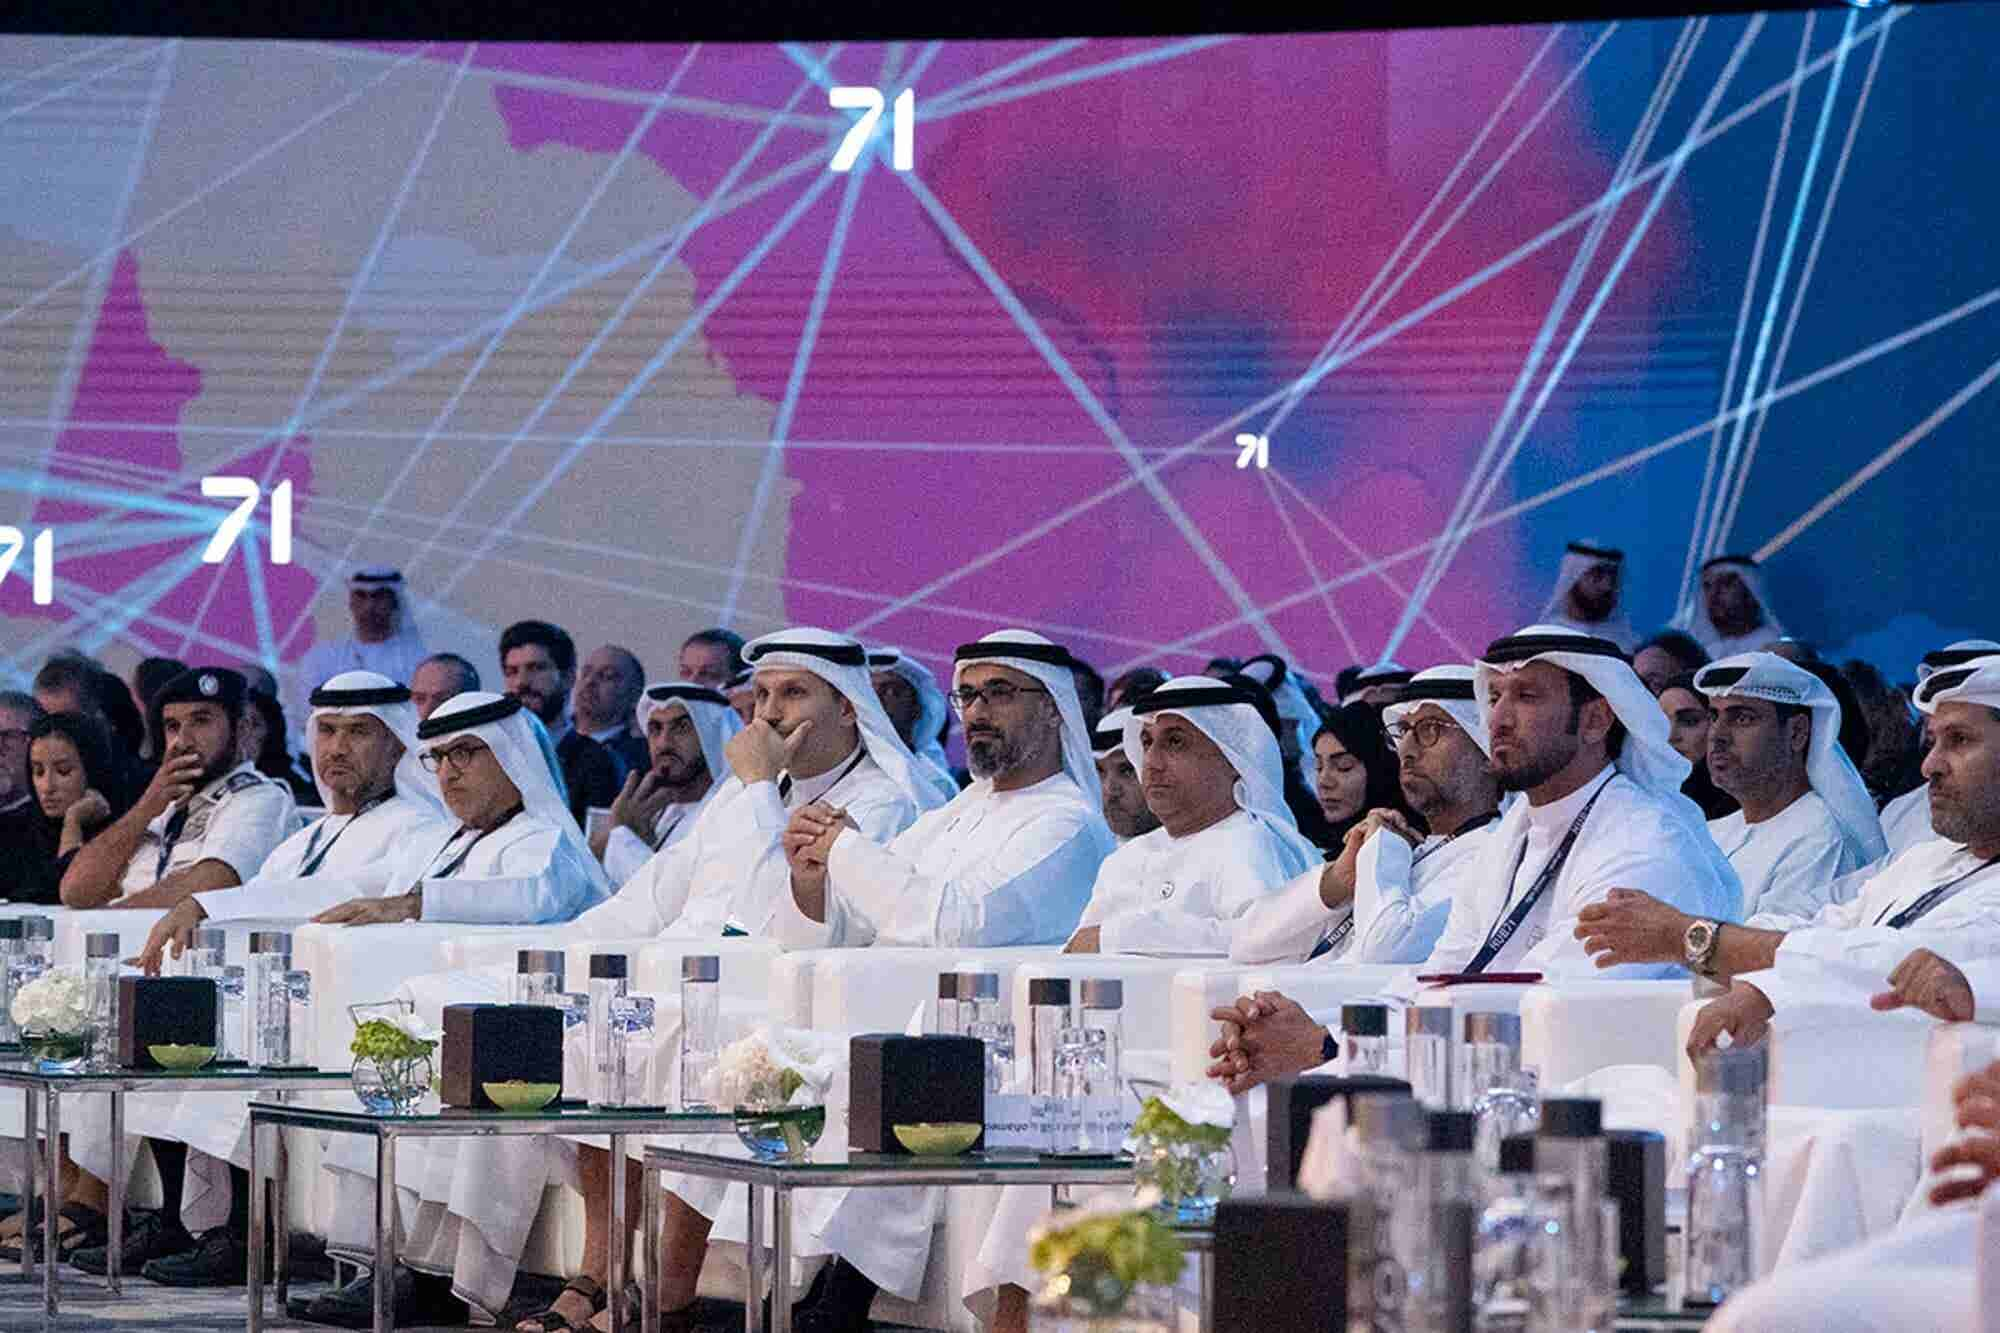 Mubadala Partners With Microsoft, SoftBank Vision Fund, and ADGM To Launch Hub71 With An AED535 Million Tech Startup Fund